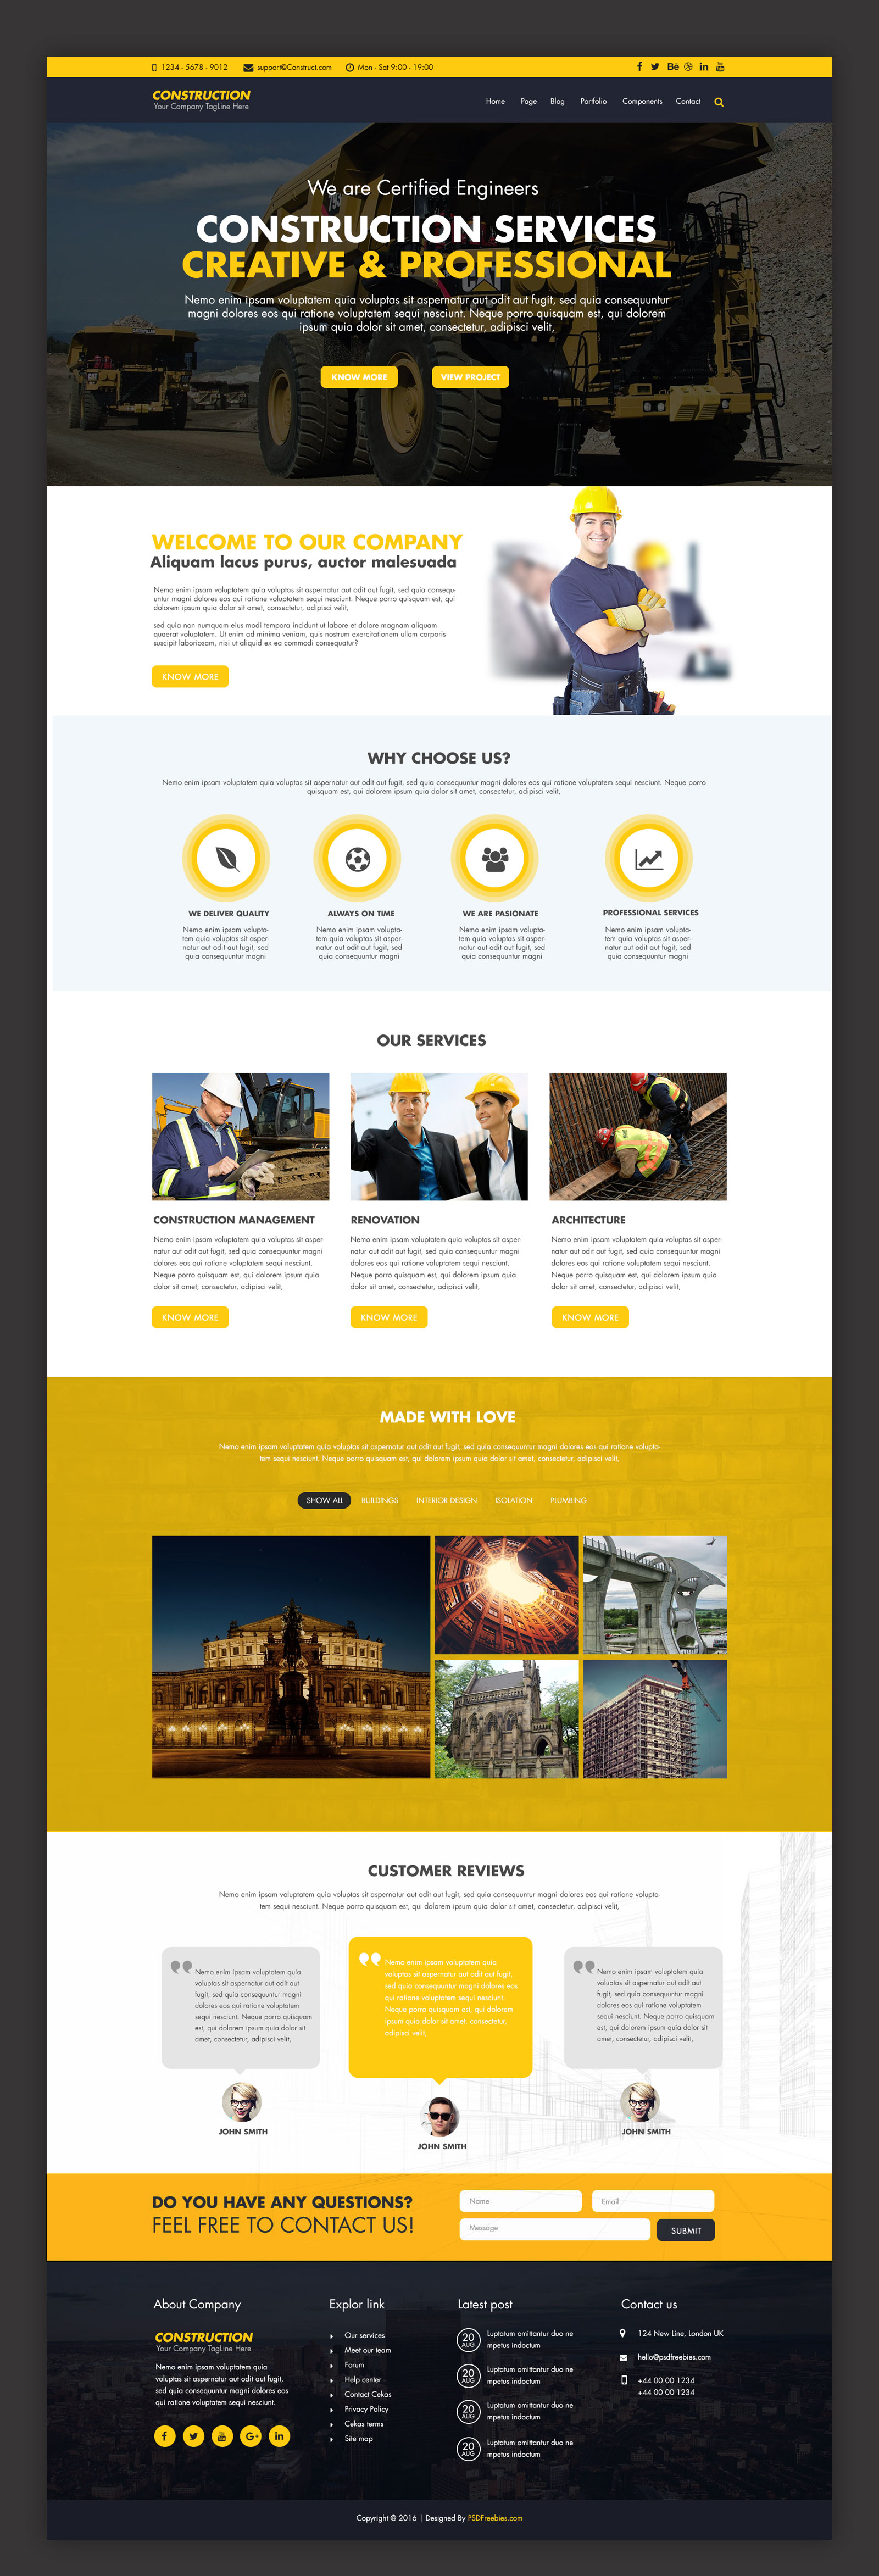 construction company website template free psd psdfreebies com